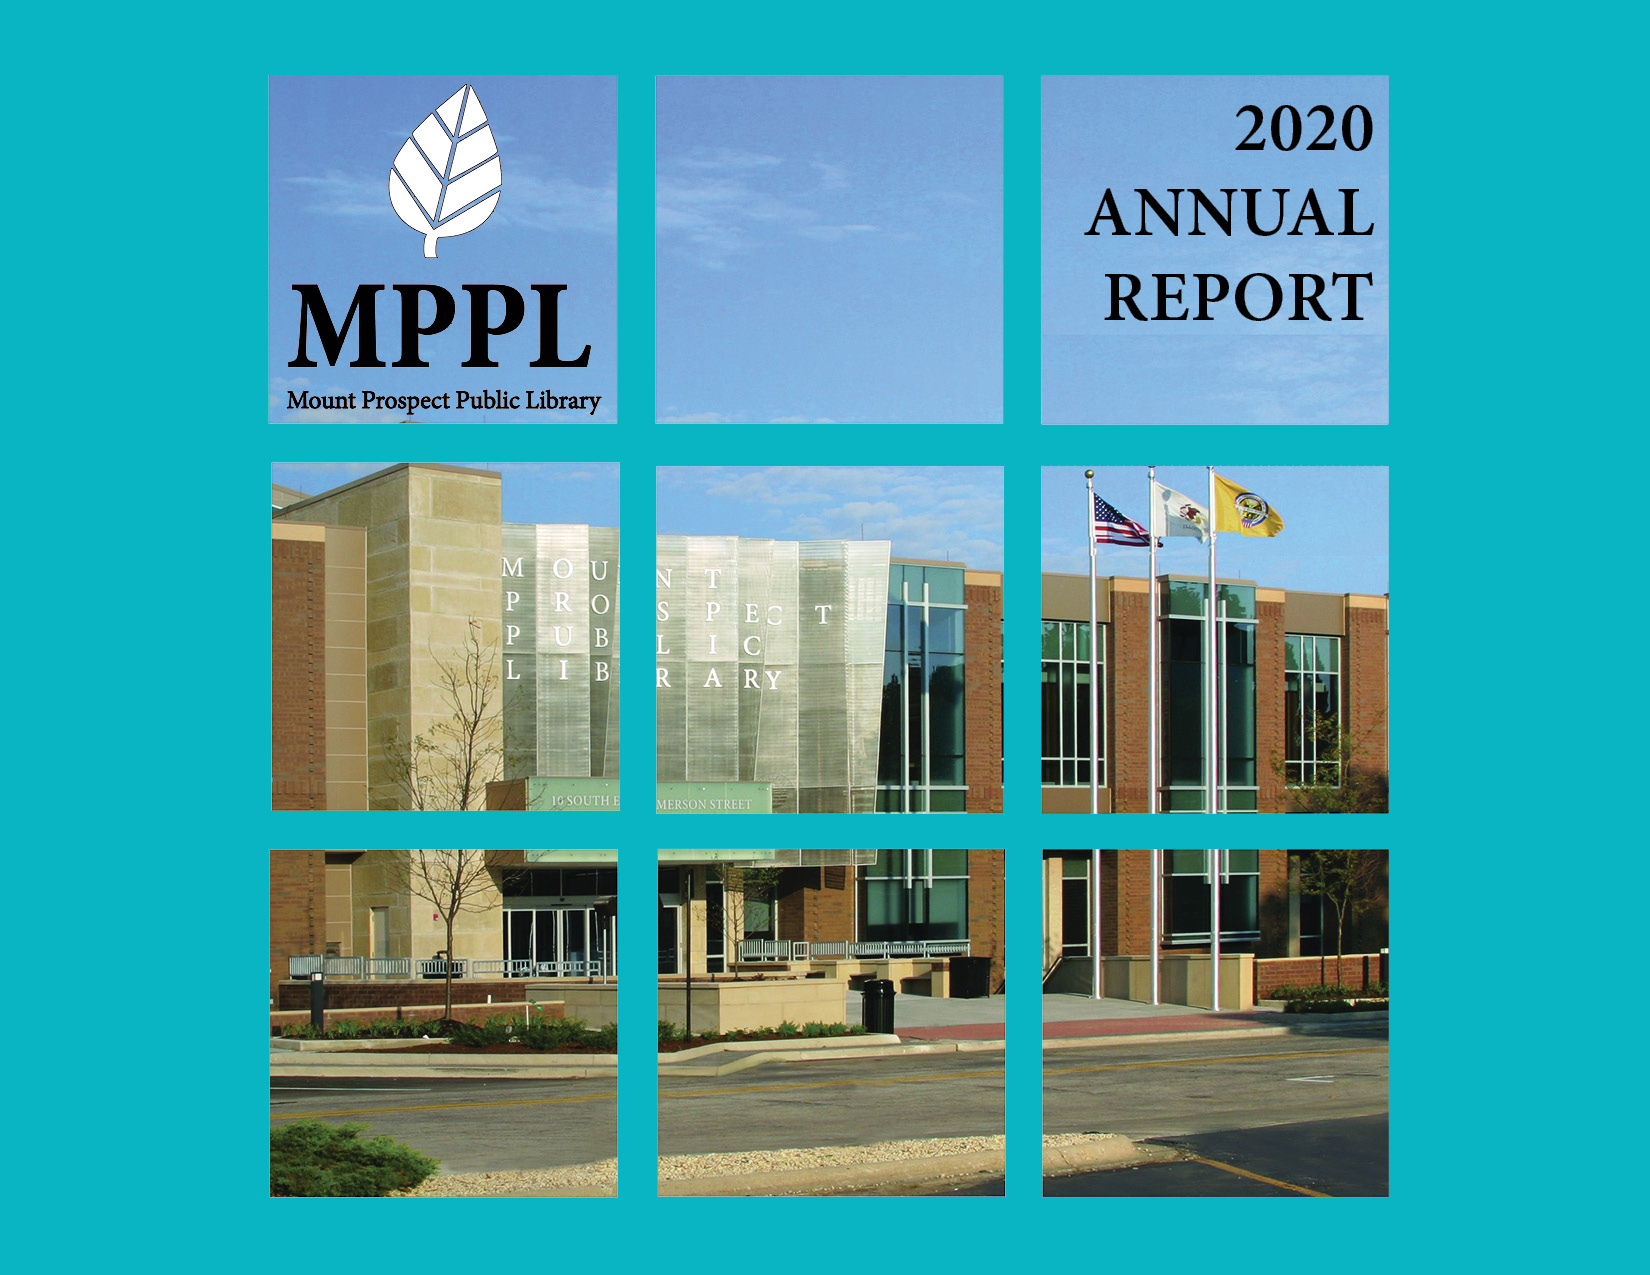 Mount Prospect Public Library 2020 annual report cover